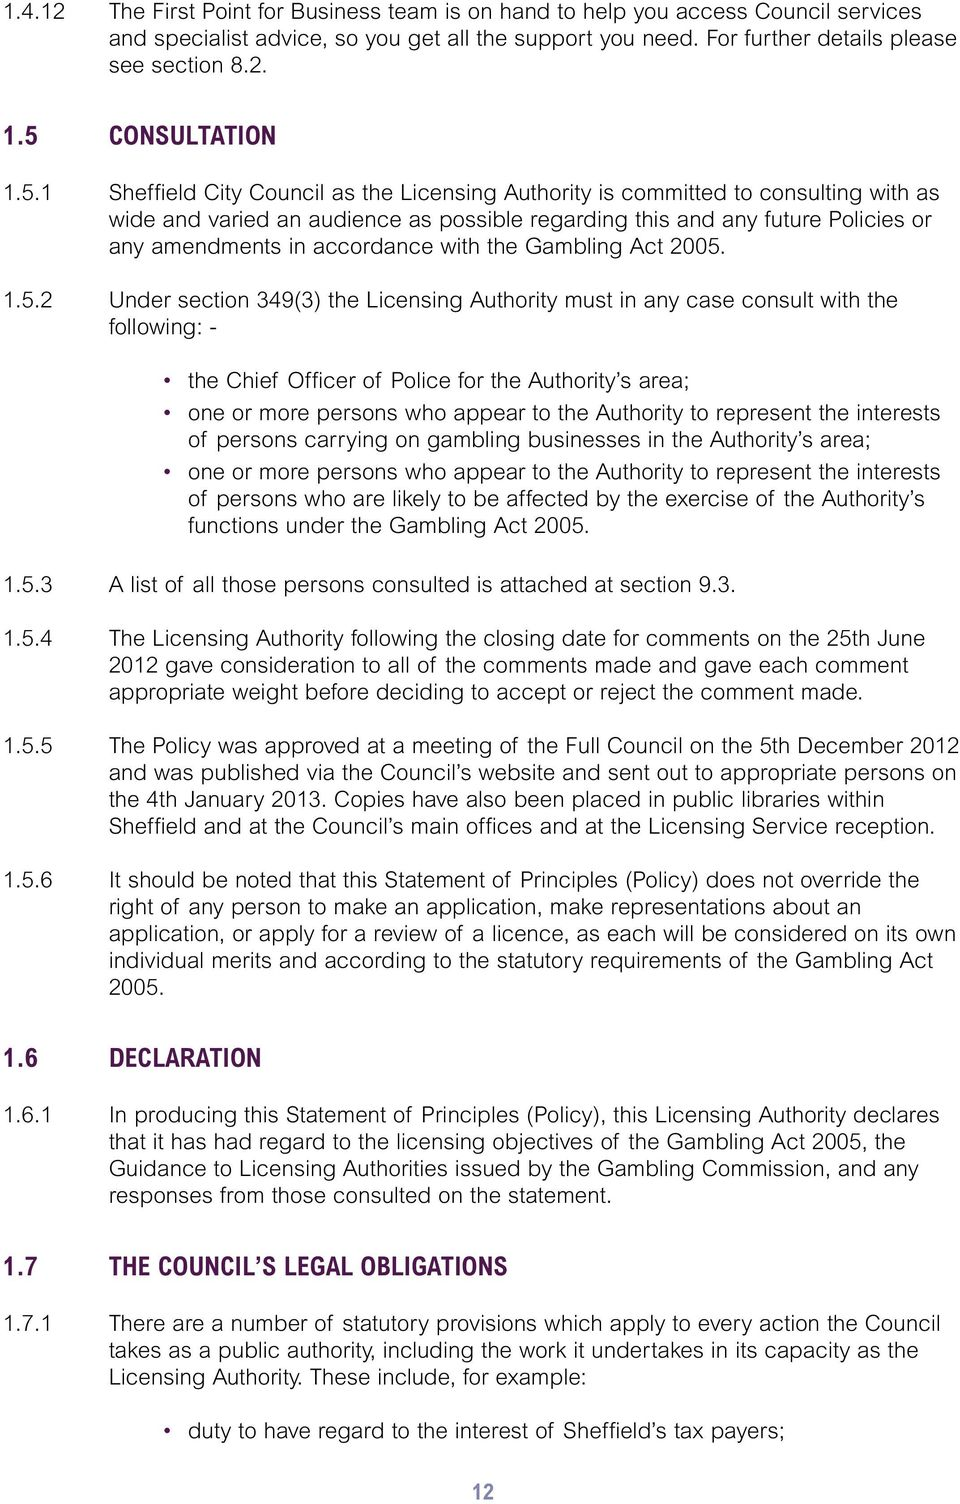 amendments in accordance with the Gambling Act 2005.